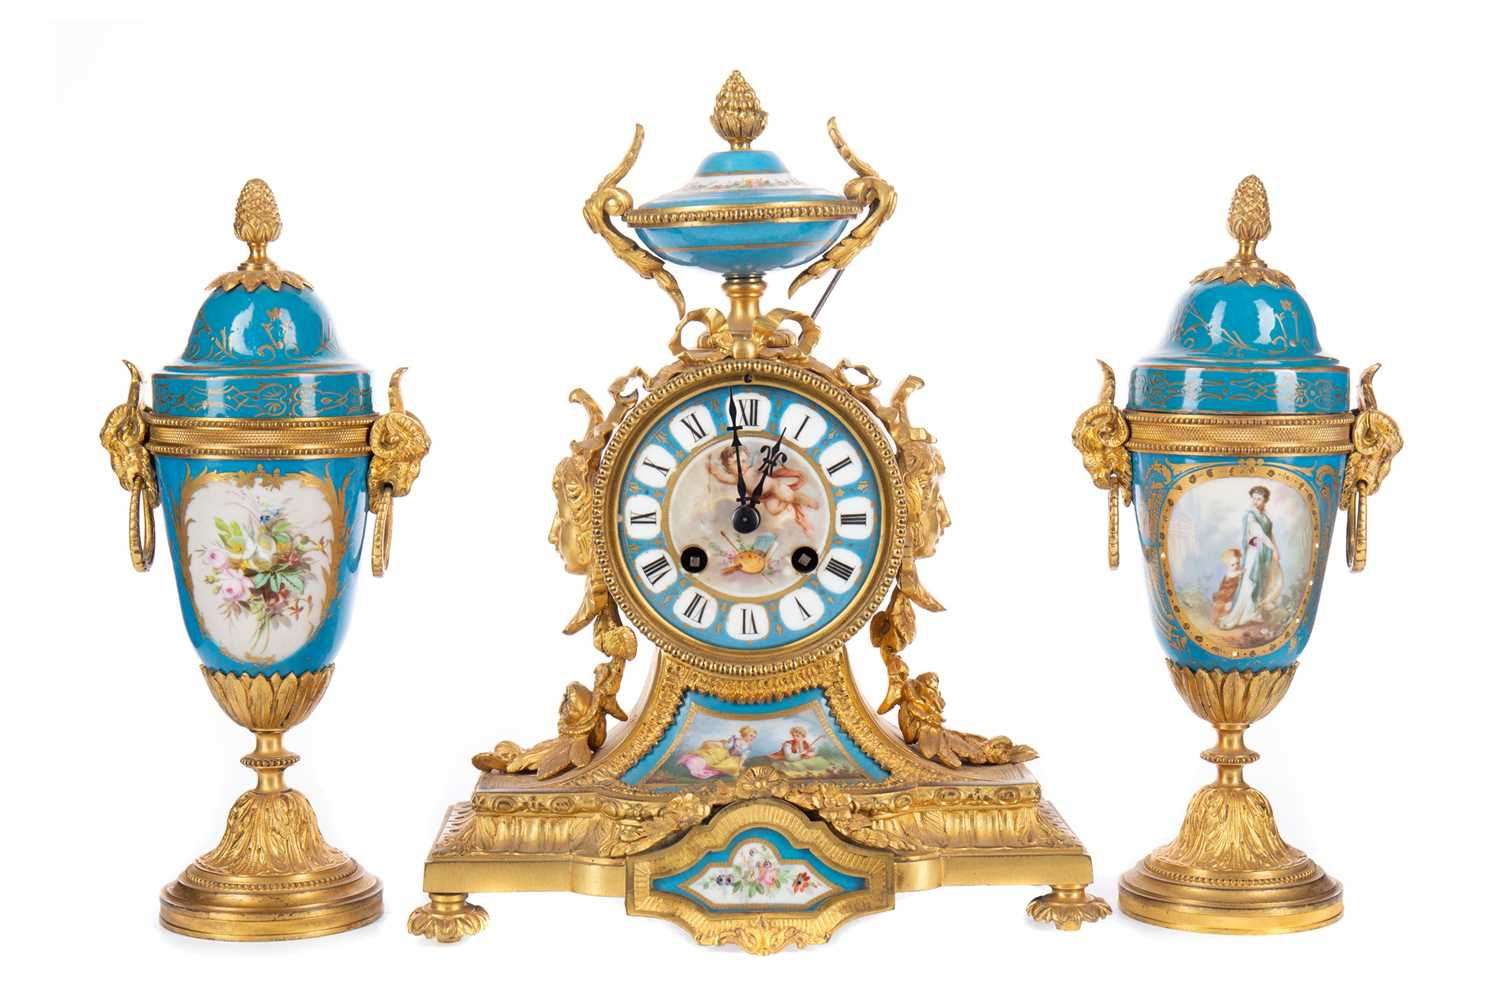 Lot 1196 - A LATE 19TH CENTURY FRENCH GILTMETAL AND PORCELAIN CLOCK GARNITURE